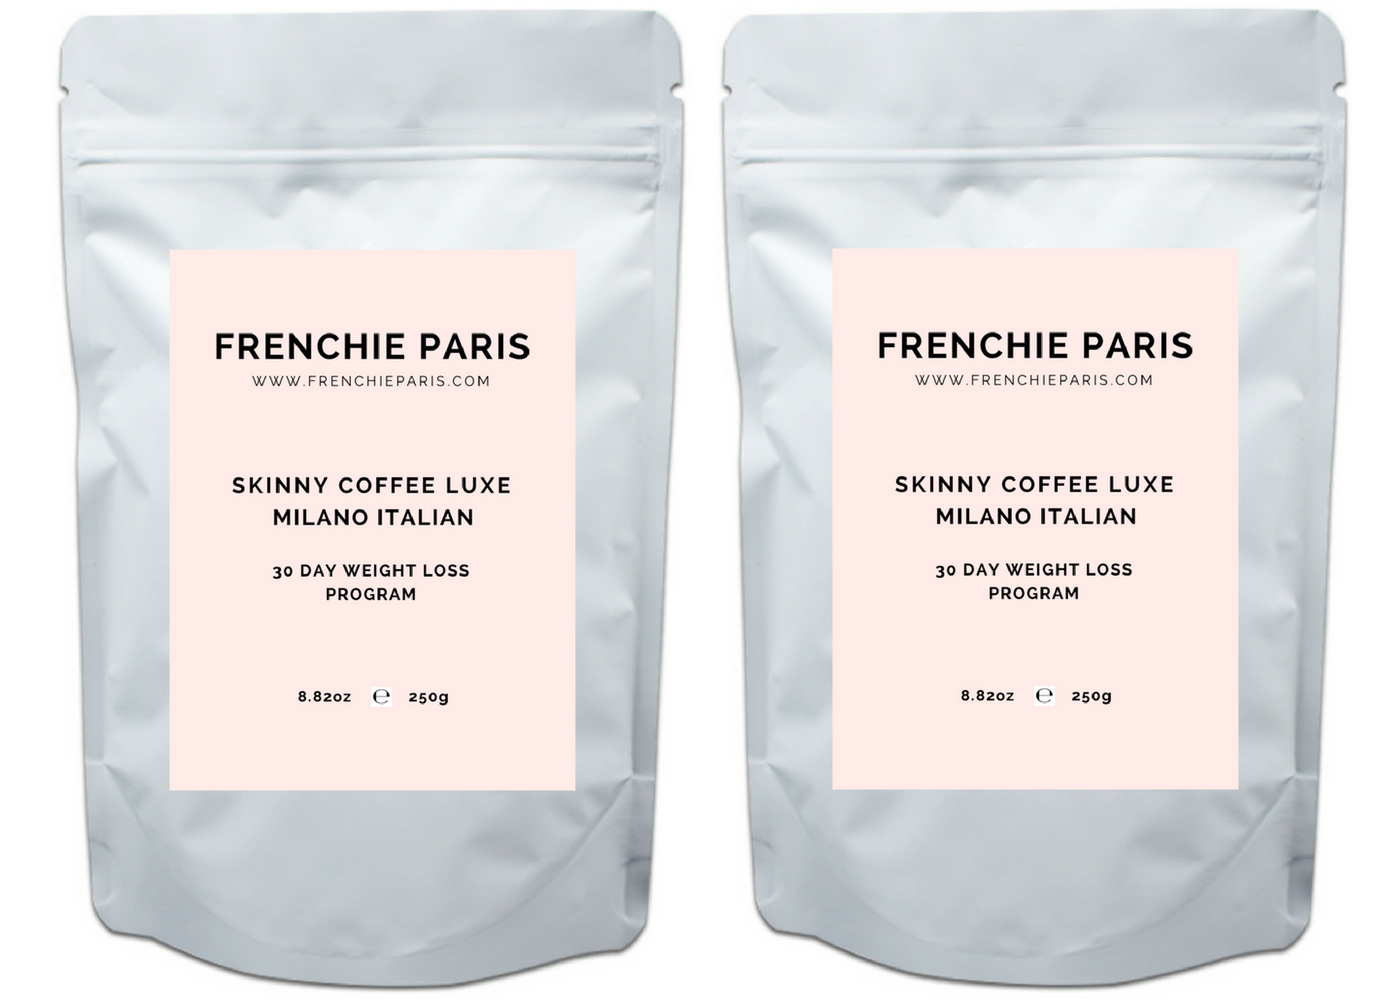 Frenchie Paris Skinny Coffee Luxe 60 Day Weight Loss Program Milano Italian 1